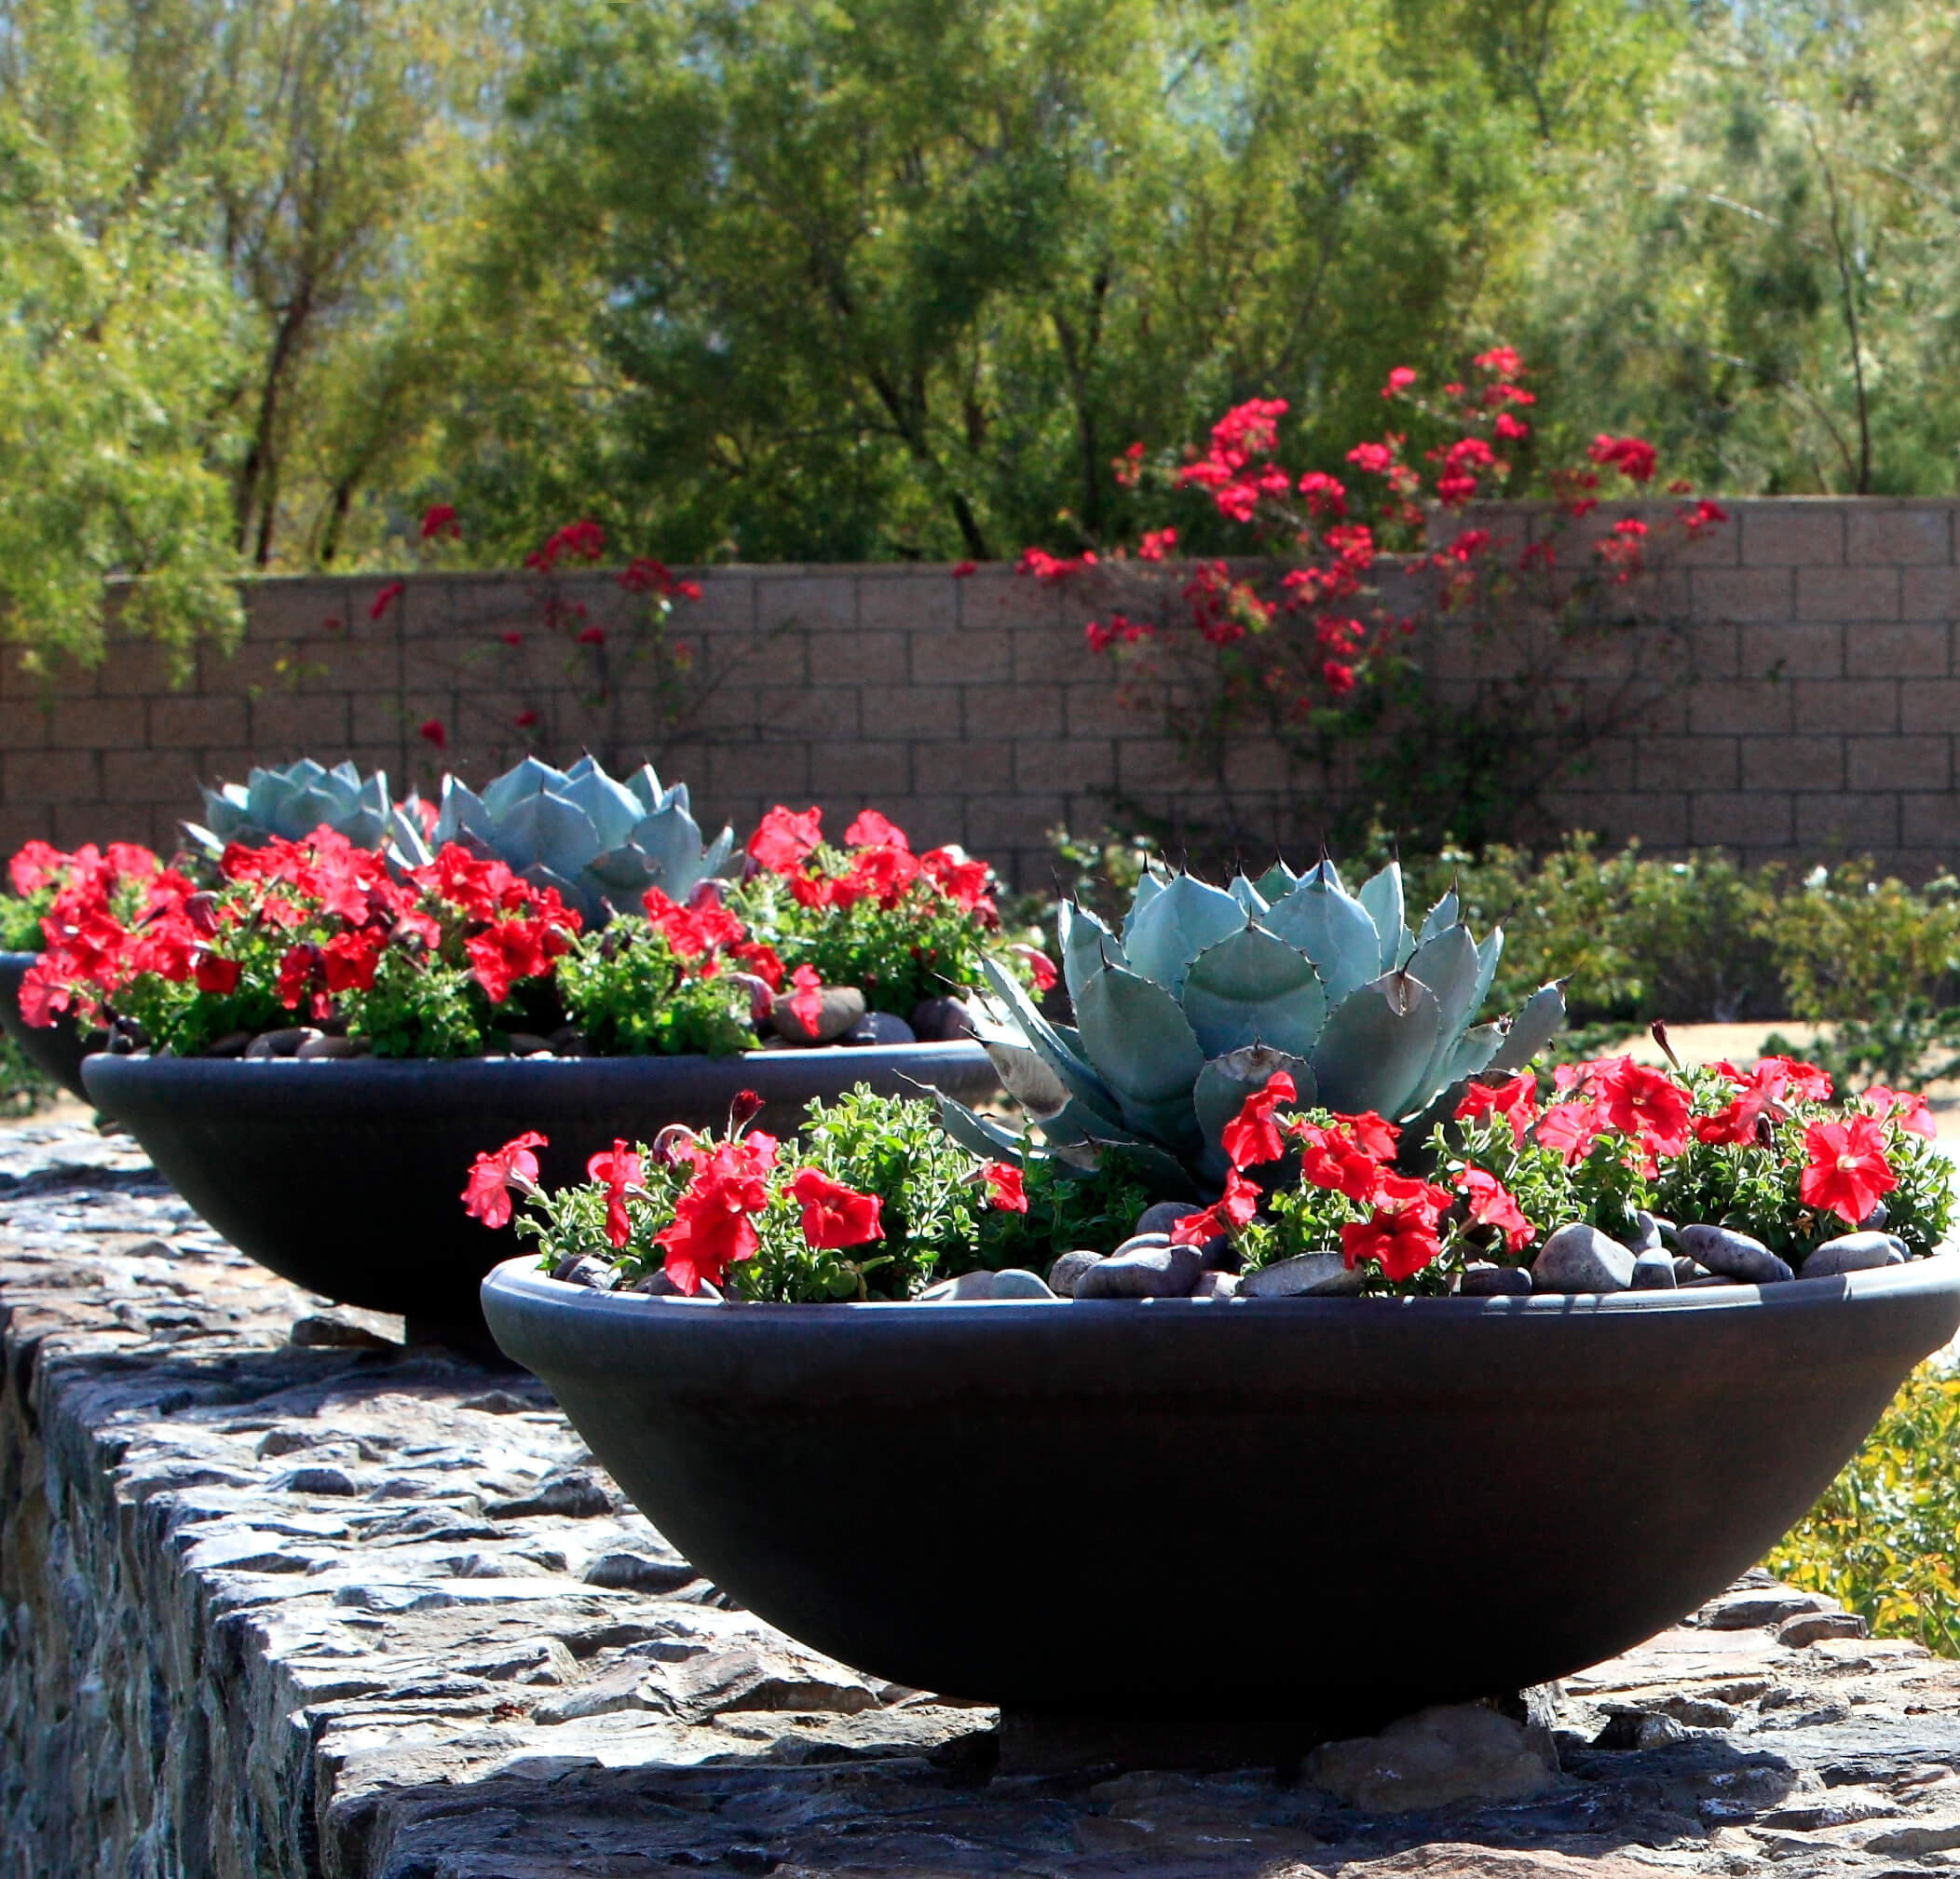 Some cacti have a nice blooming look that makes them amazing for a centerpiece of an arrangement. Even in standalone arrangements, cacti make for great companion plants for other flowers.